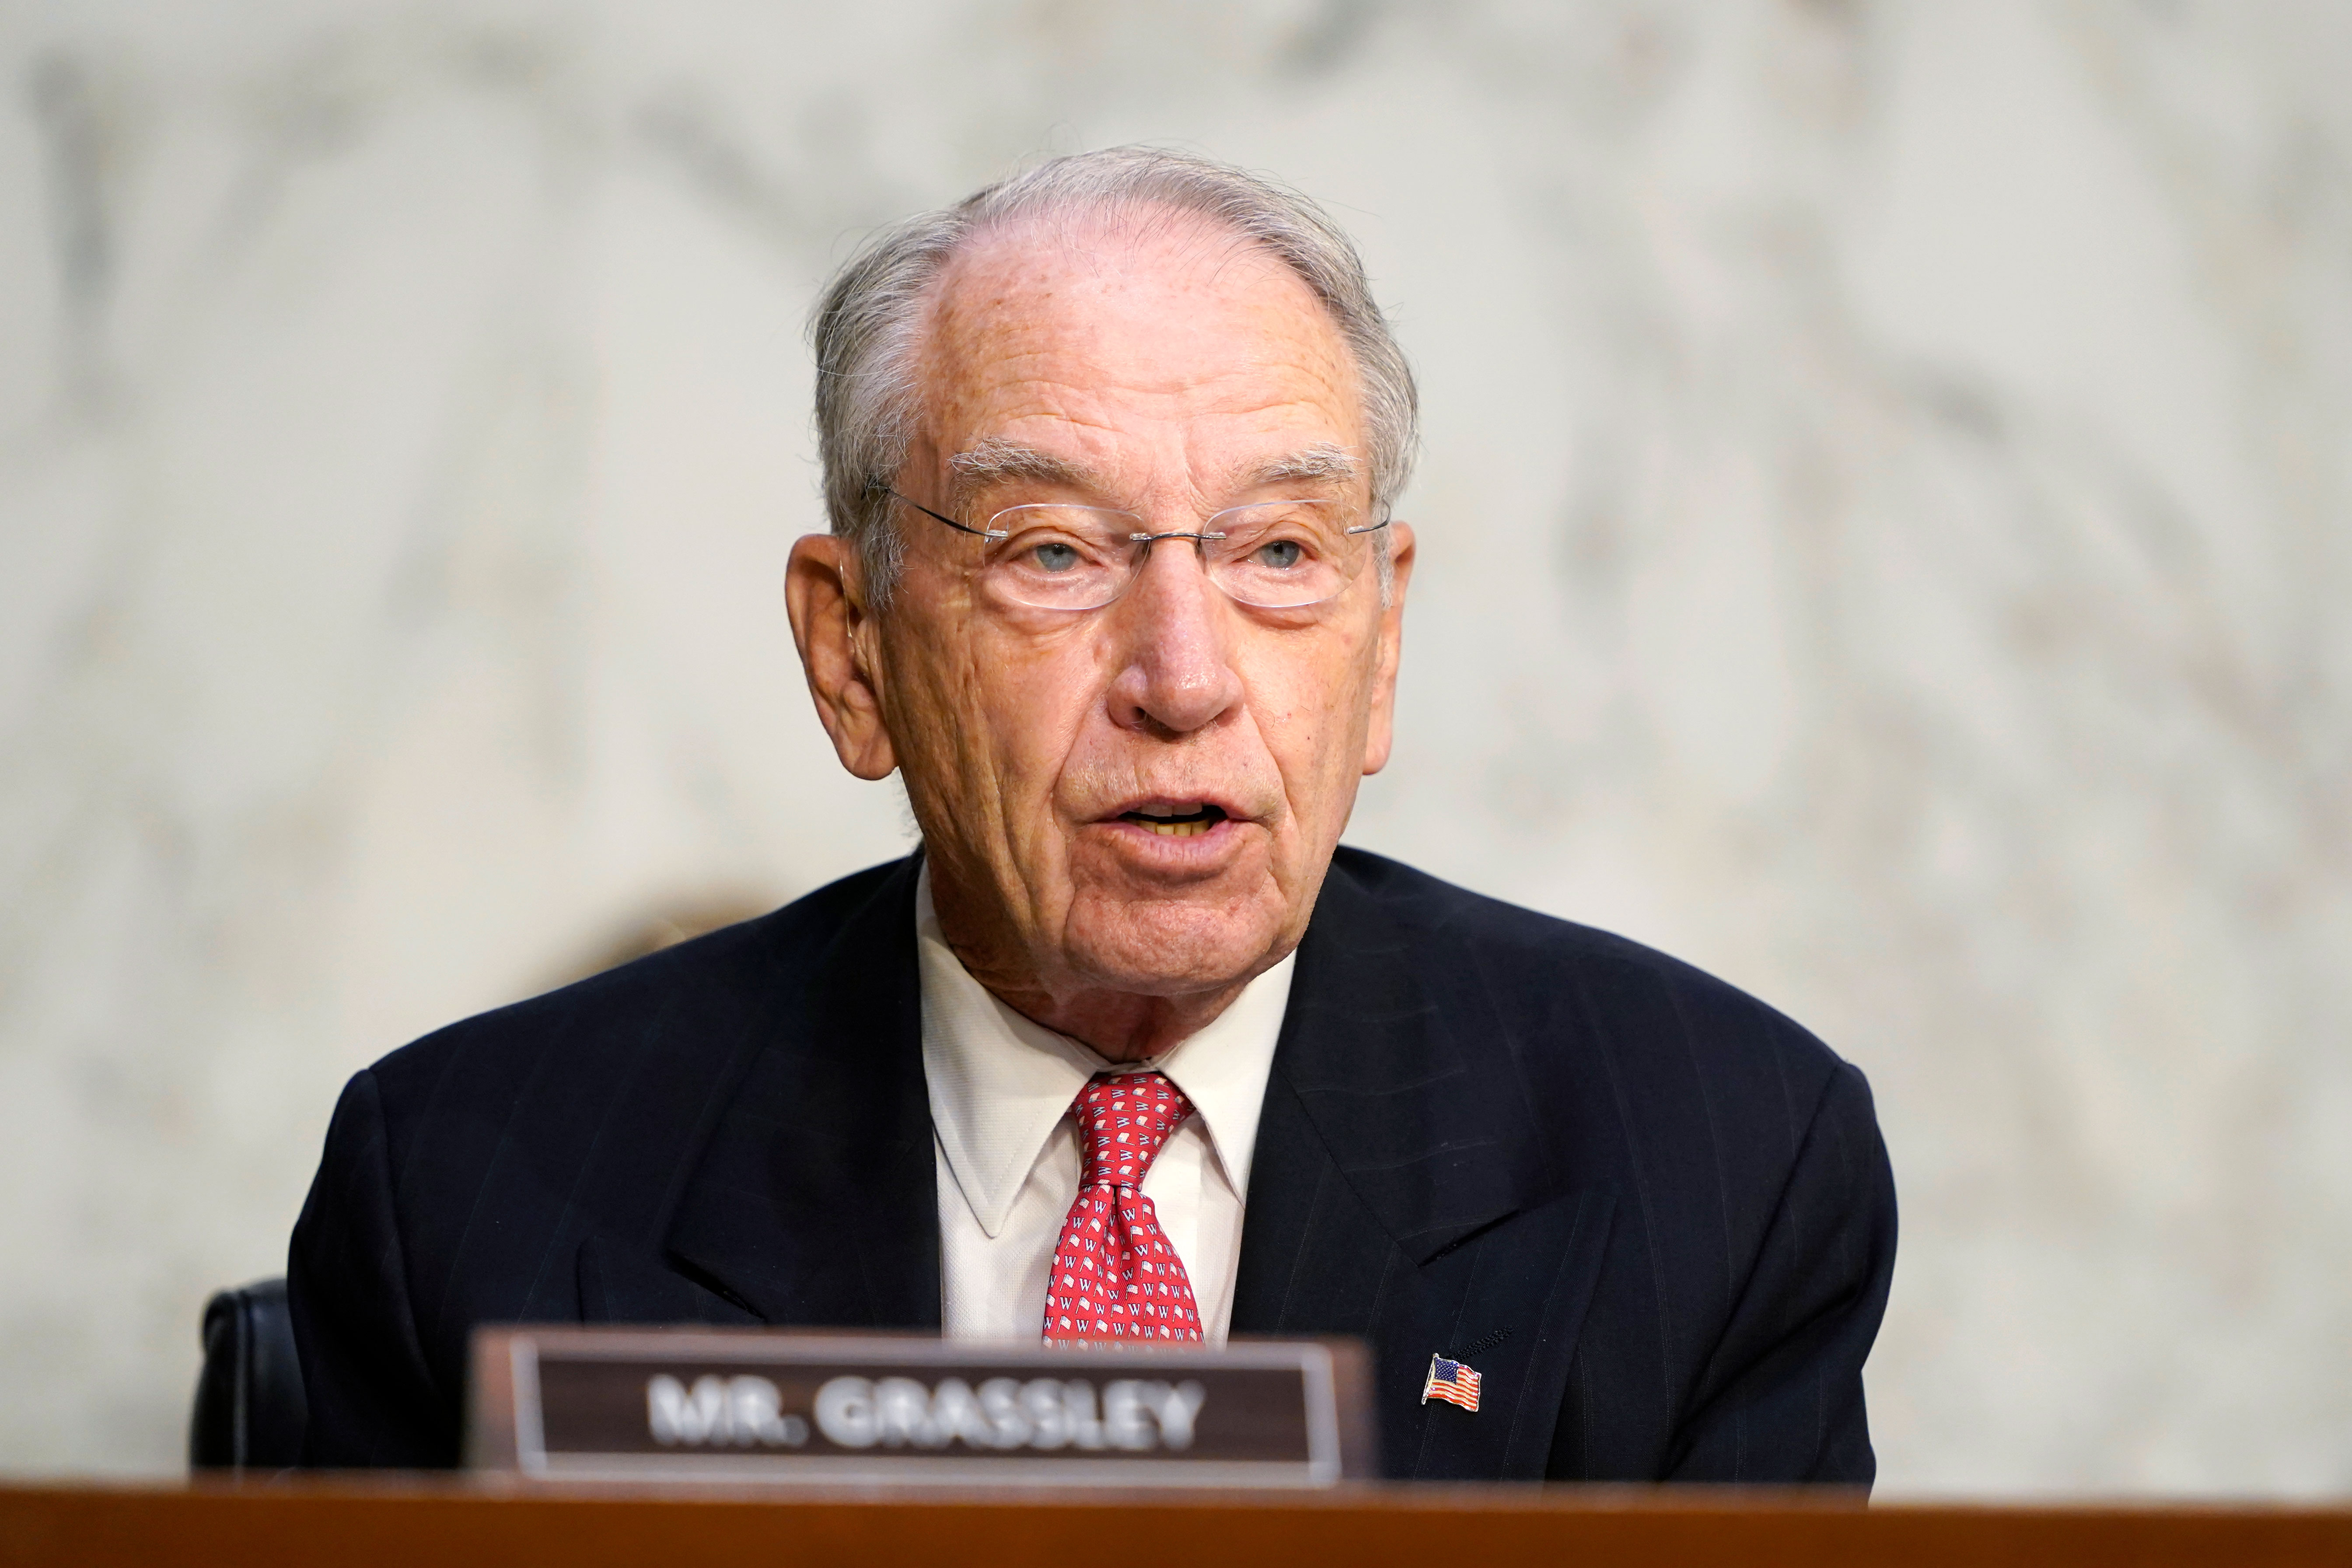 Sen. Chuck Grassley speaks during a confirmation hearing in Washington, DC, on October 14.